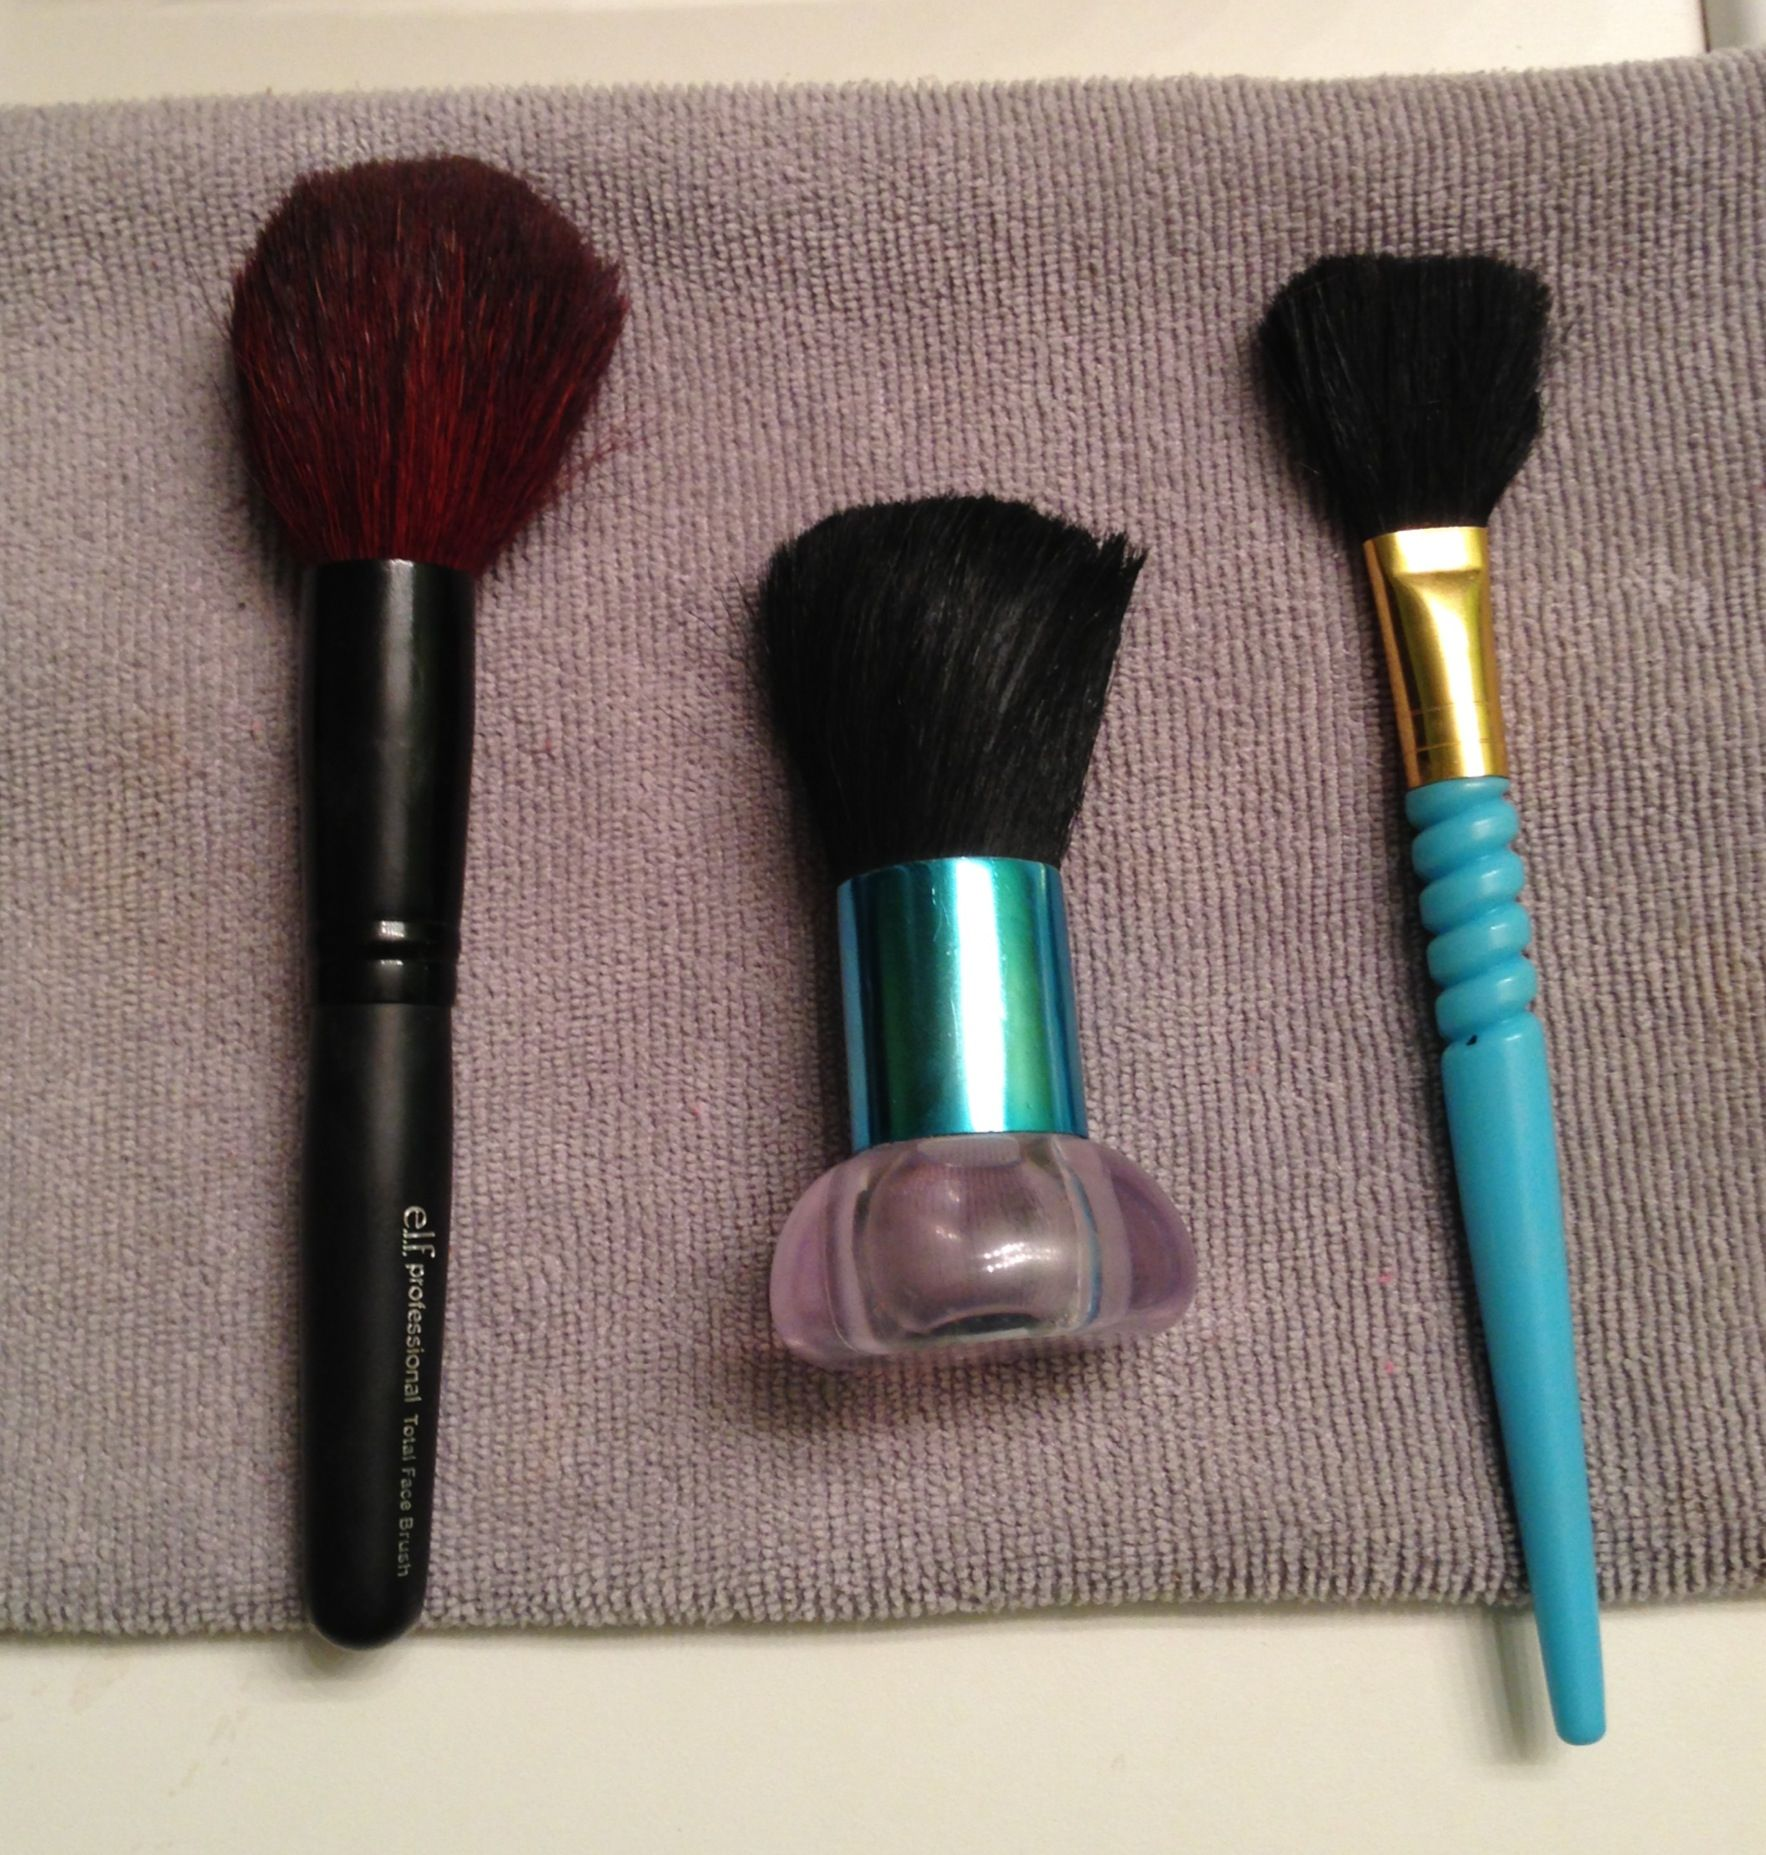 DIYClean your make up brushes. Works great! Mix 1 cup of